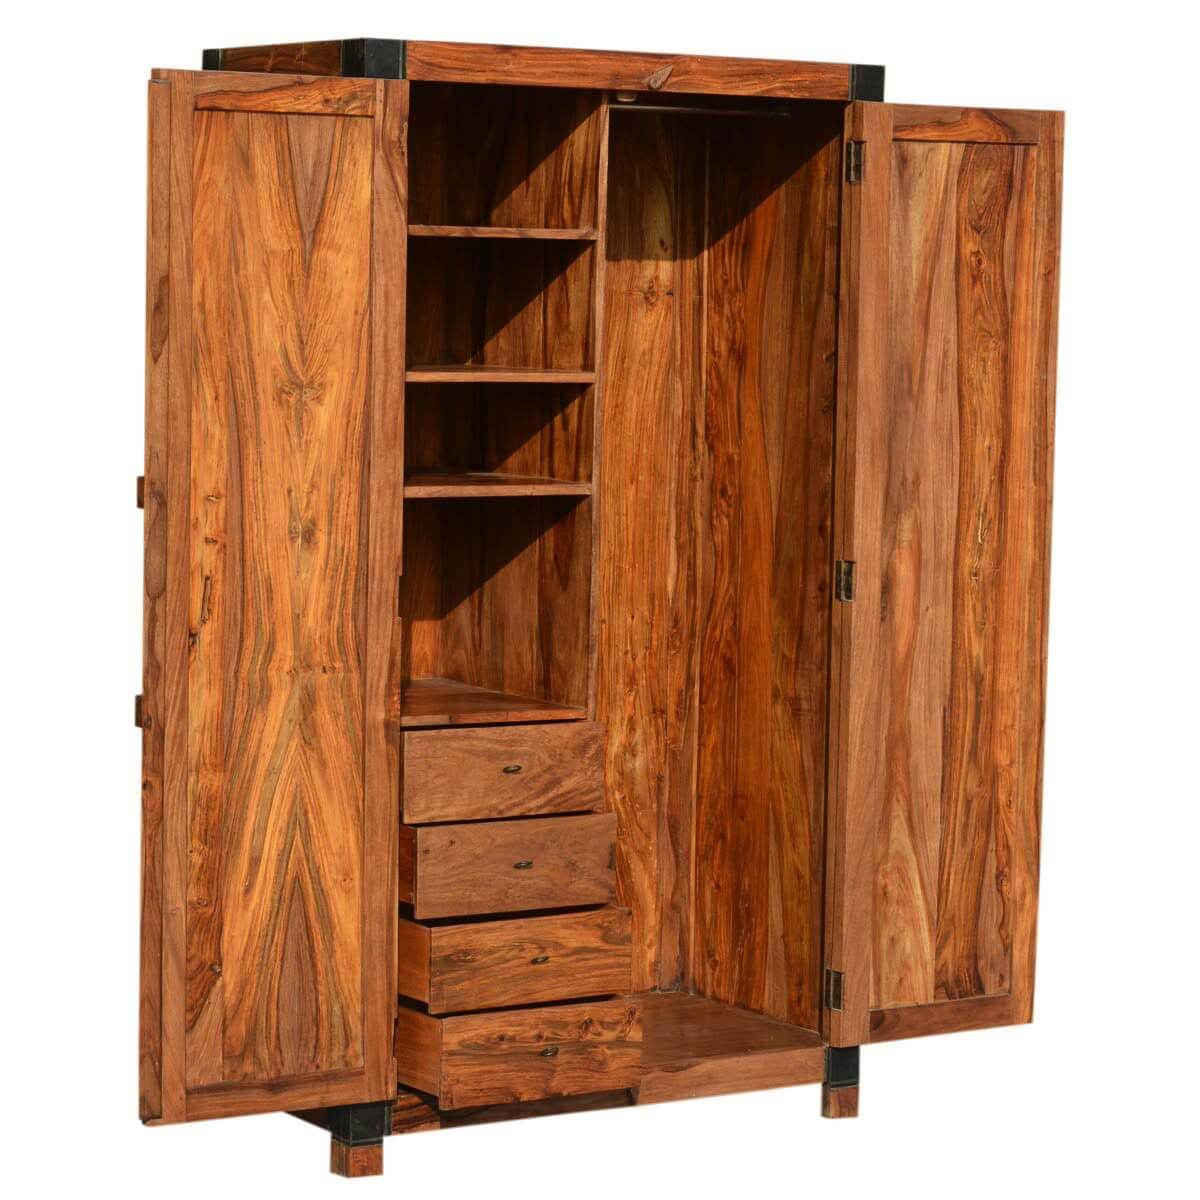 Princeton Solid Wood Bedroom Armoire Wardrobe With Shelves ...